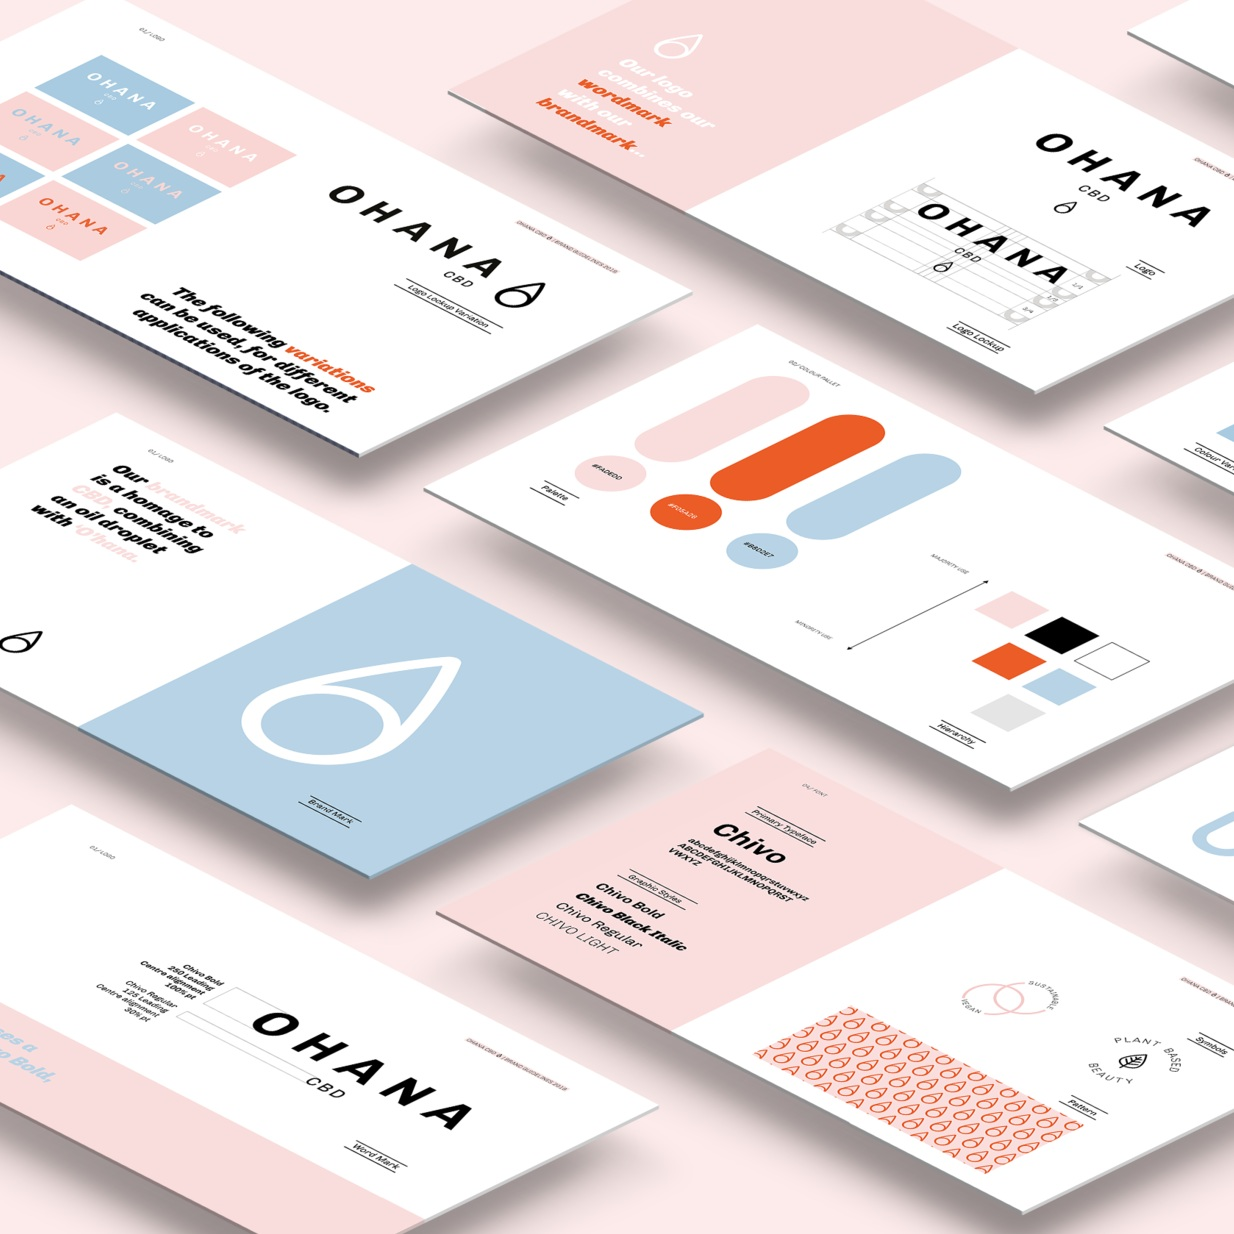 Coming soon… - After the submission for my Graphic Communication Module, I continued to work with Ohana to develop their final visual identity and deliver a brand guidelines book. The new brand will be launching soon!